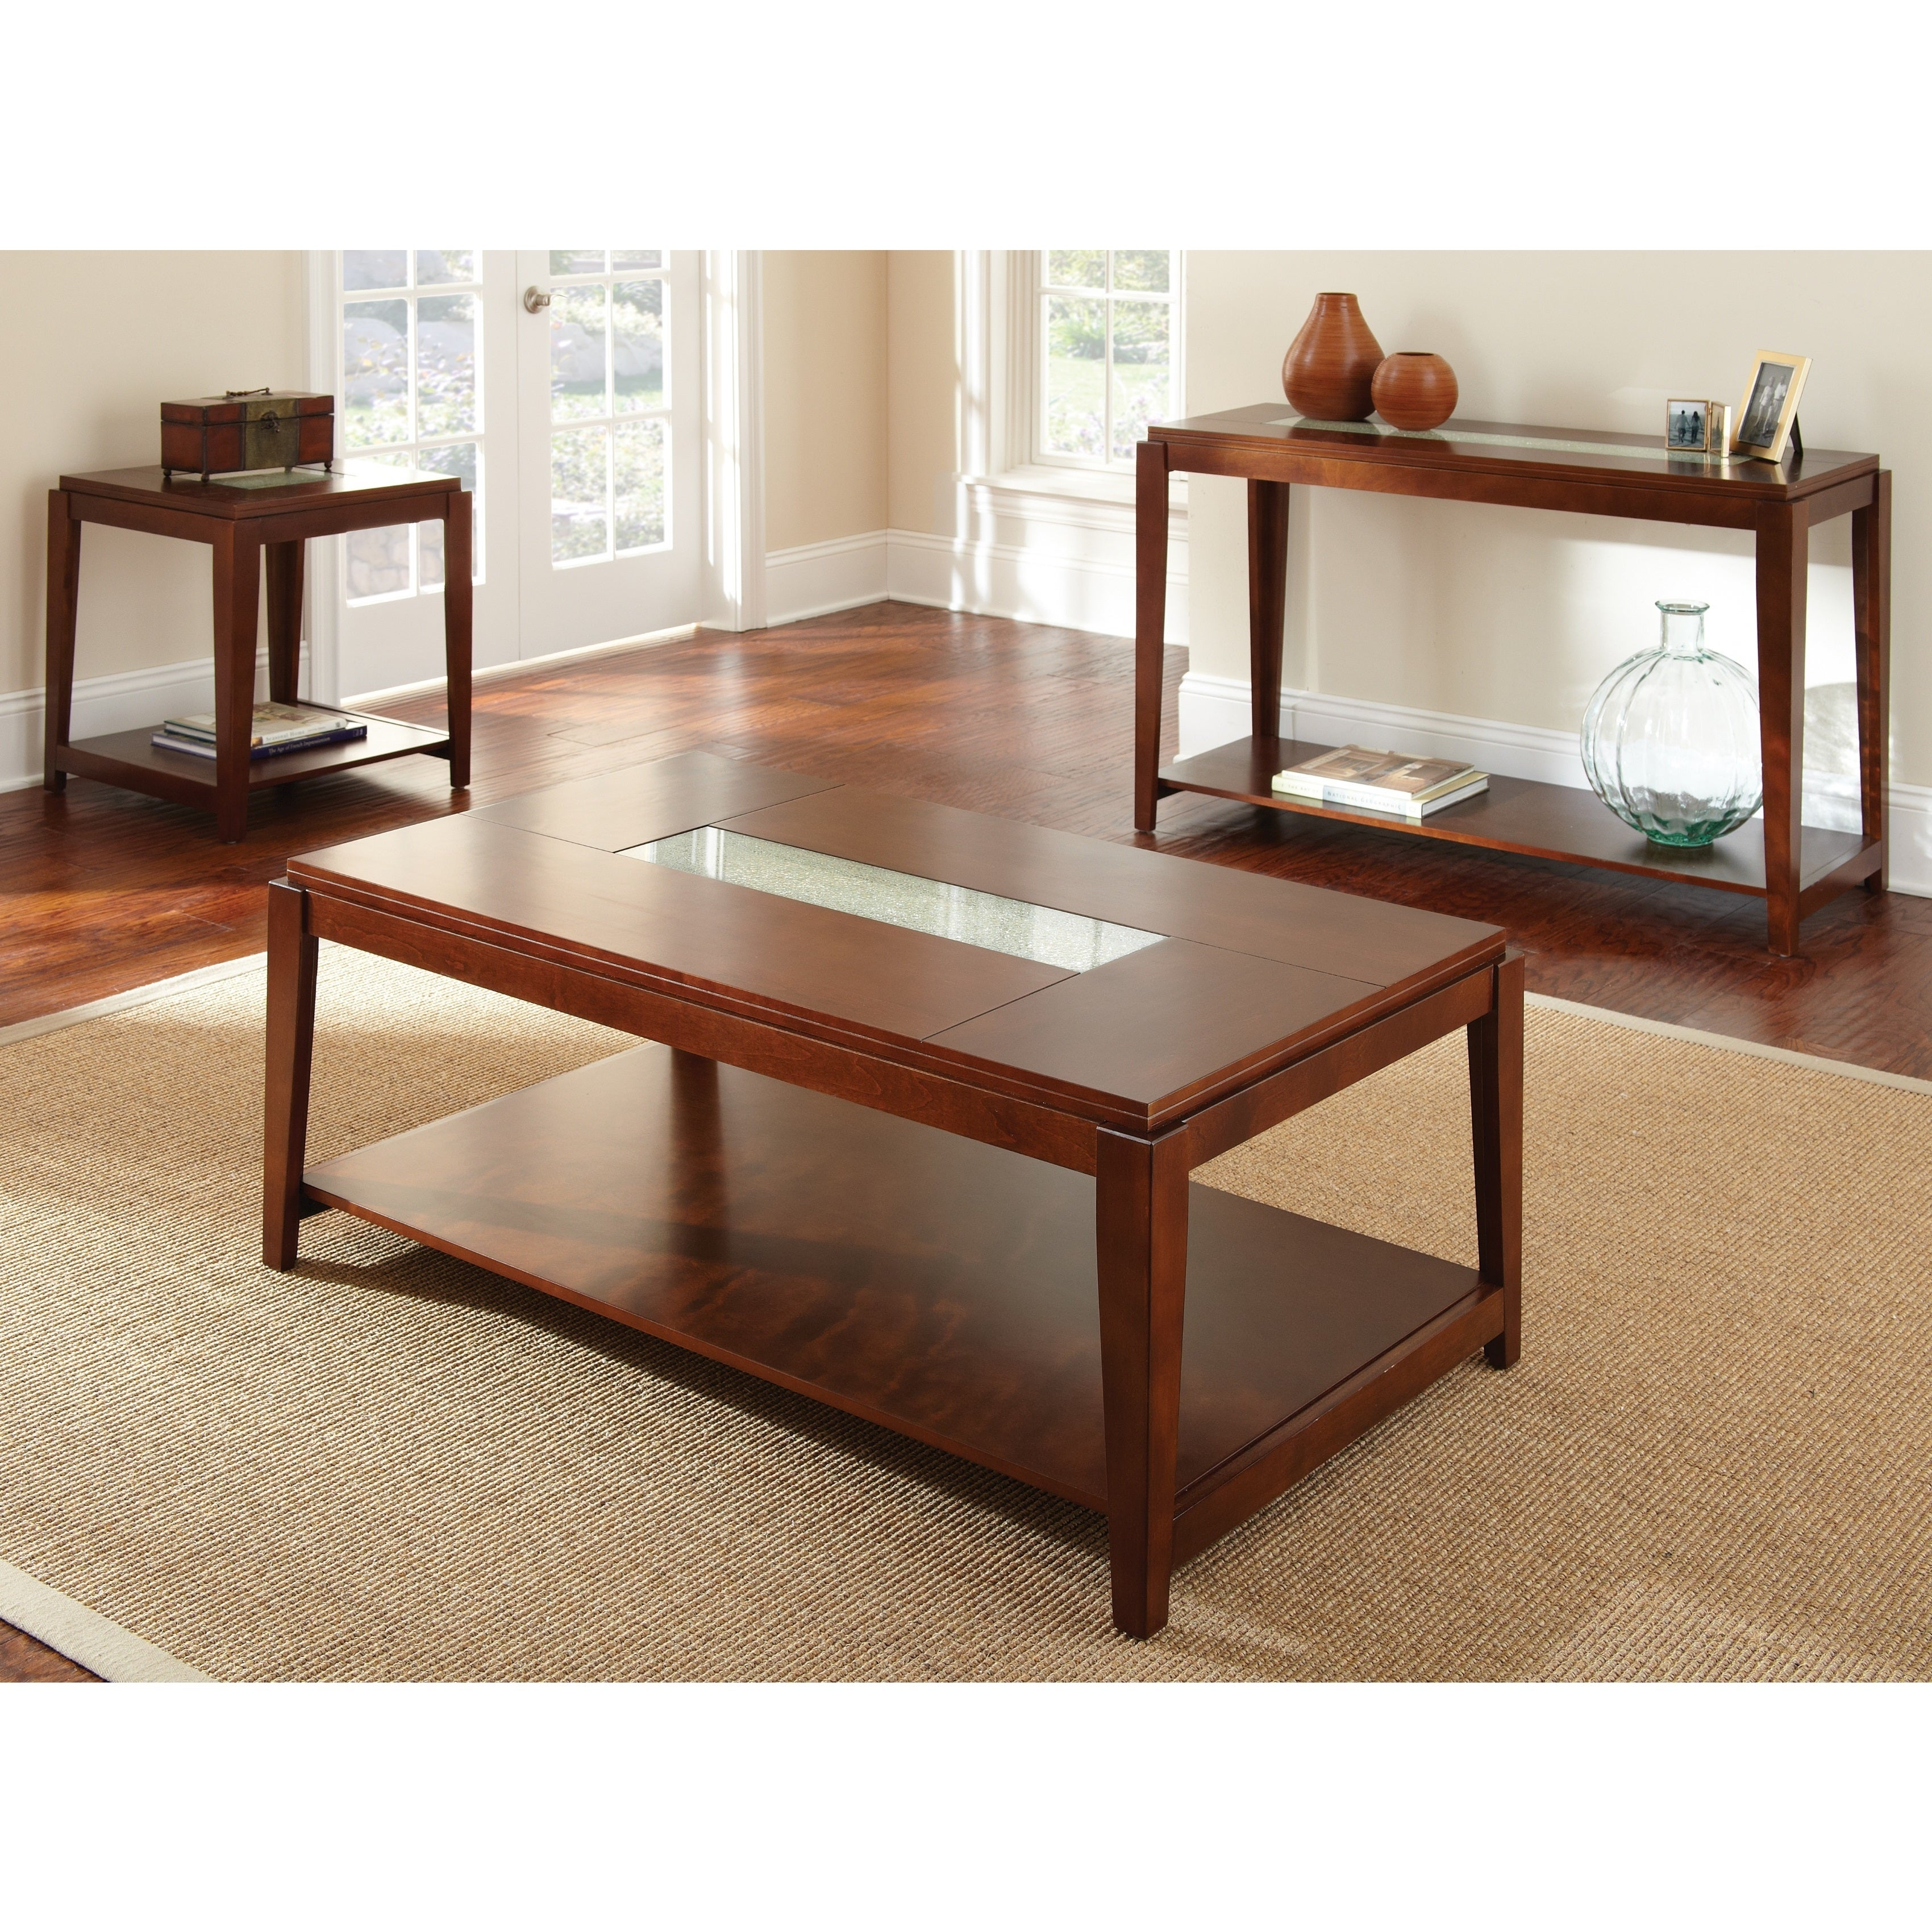 Juliana Cracked Glass Inset Coffee Table by Greyson Living Free